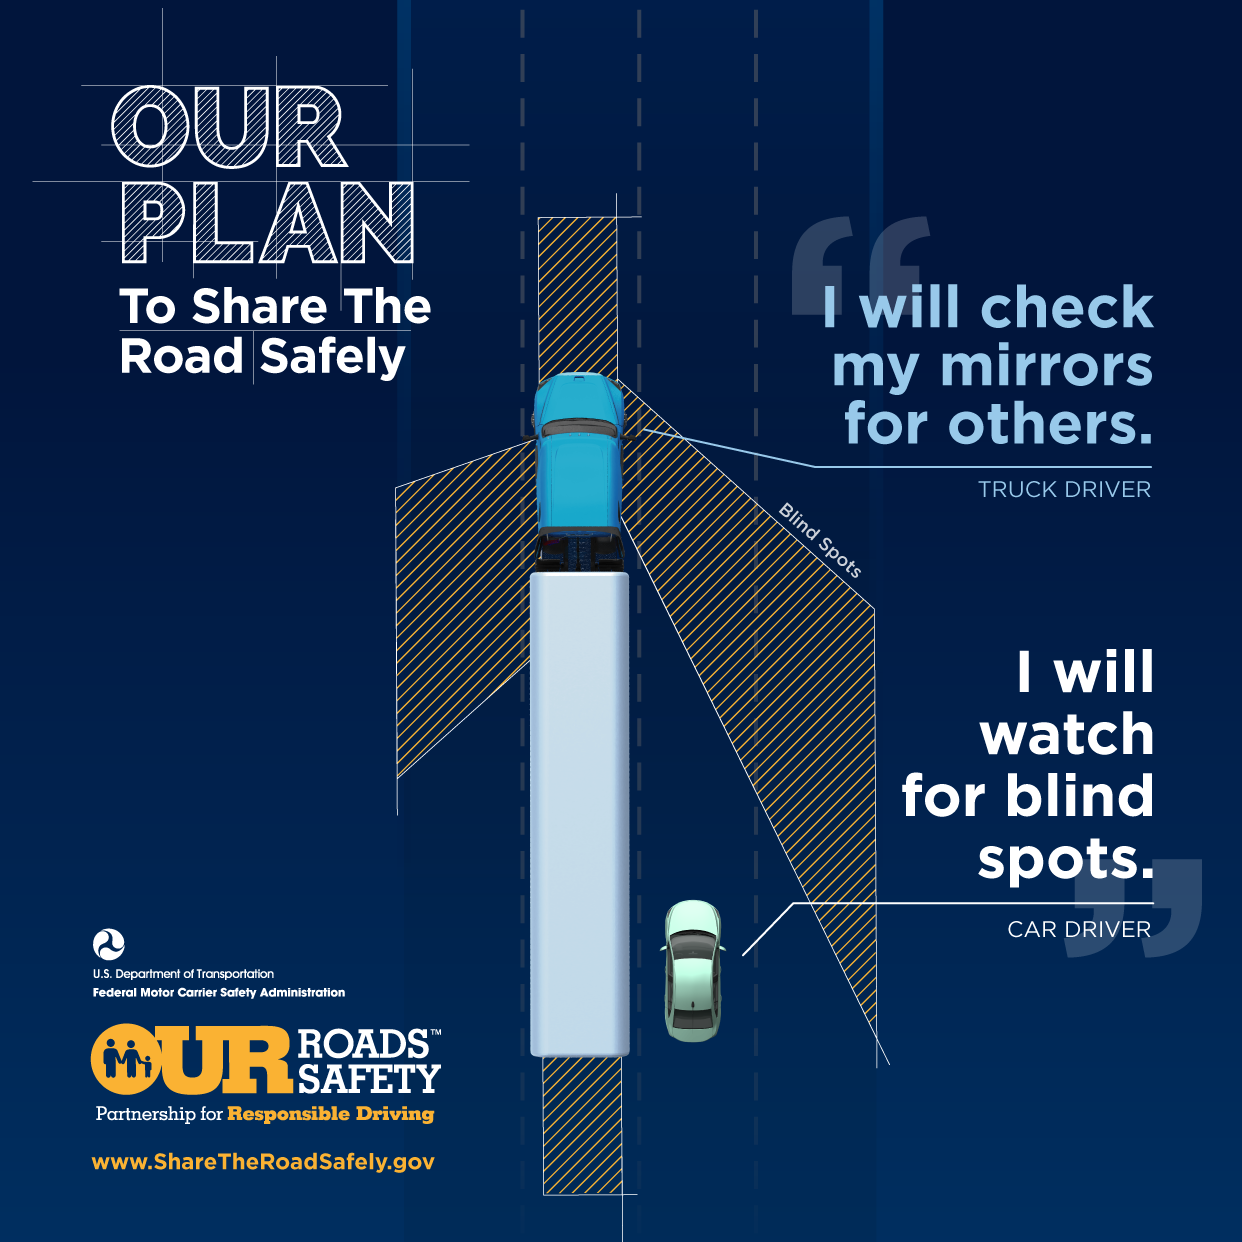 Our Plan: To Share The Road Safely… Be Sure To Check Blind Spots.